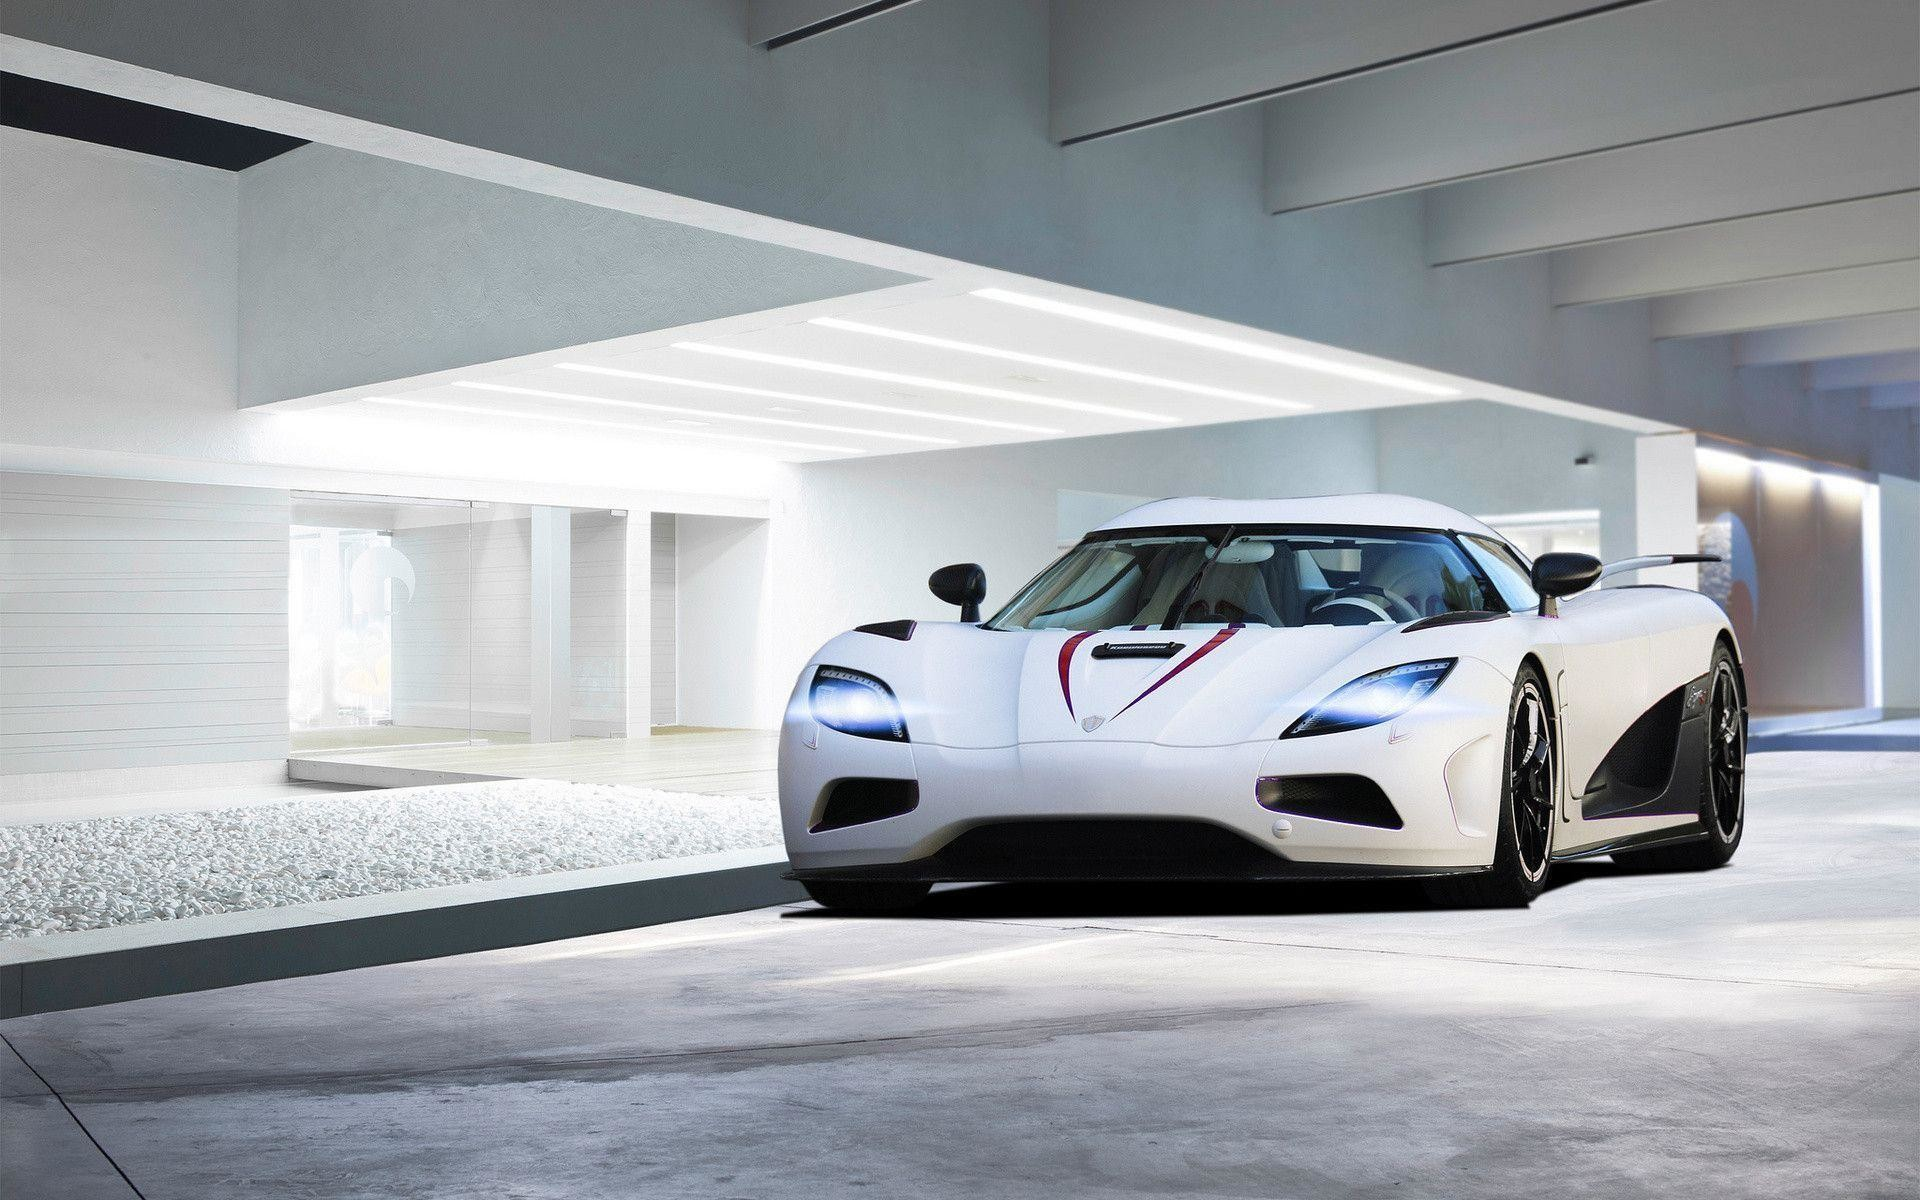 1920x1200 7 Koenigsegg Agera R Wallpapers | Koenigsegg Agera R Backgrounds